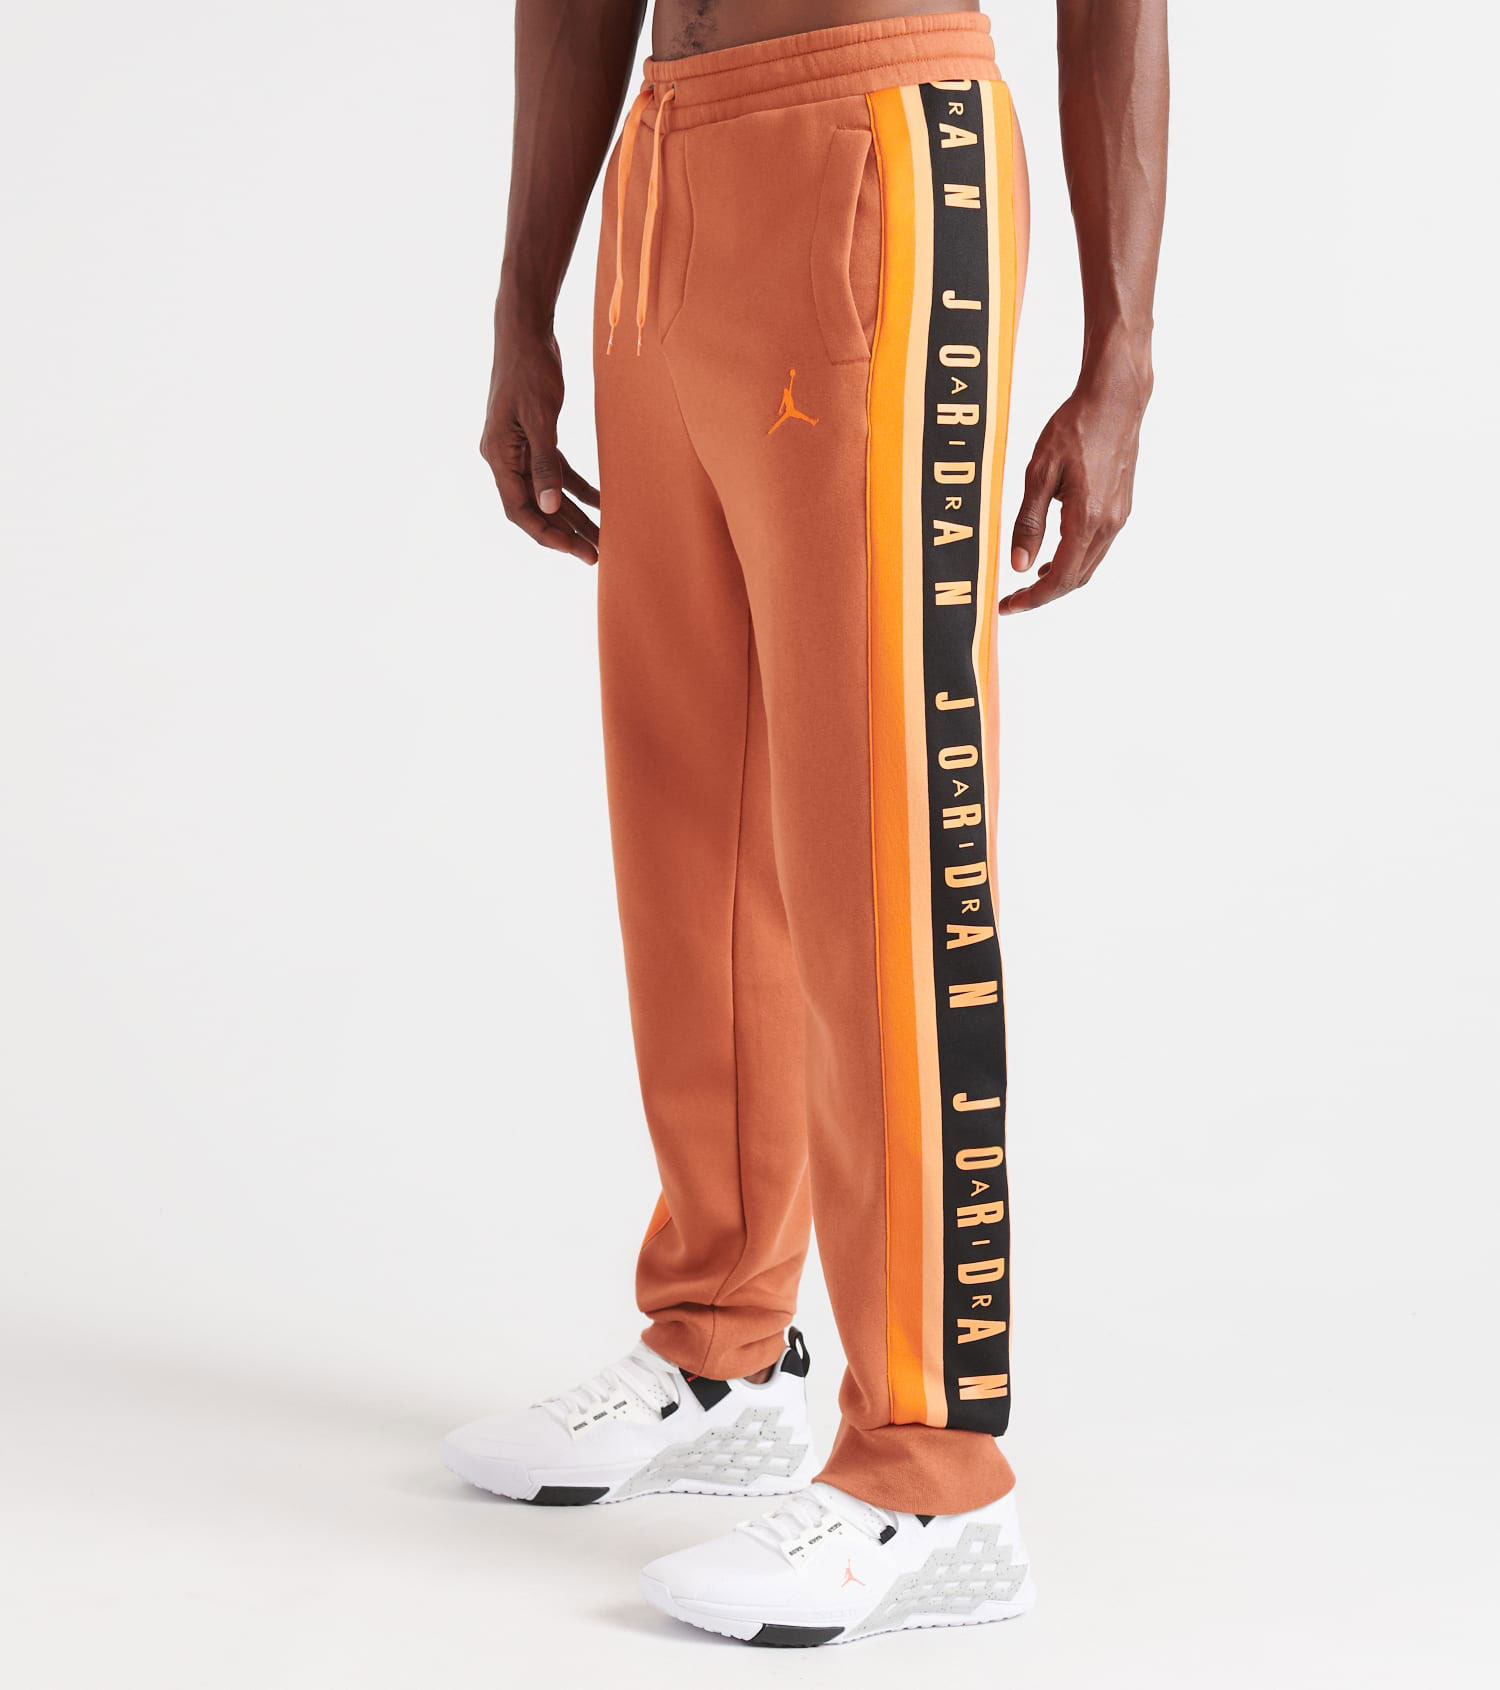 jordan-shattered-backboard-3.0-pants-jimmy-jazz